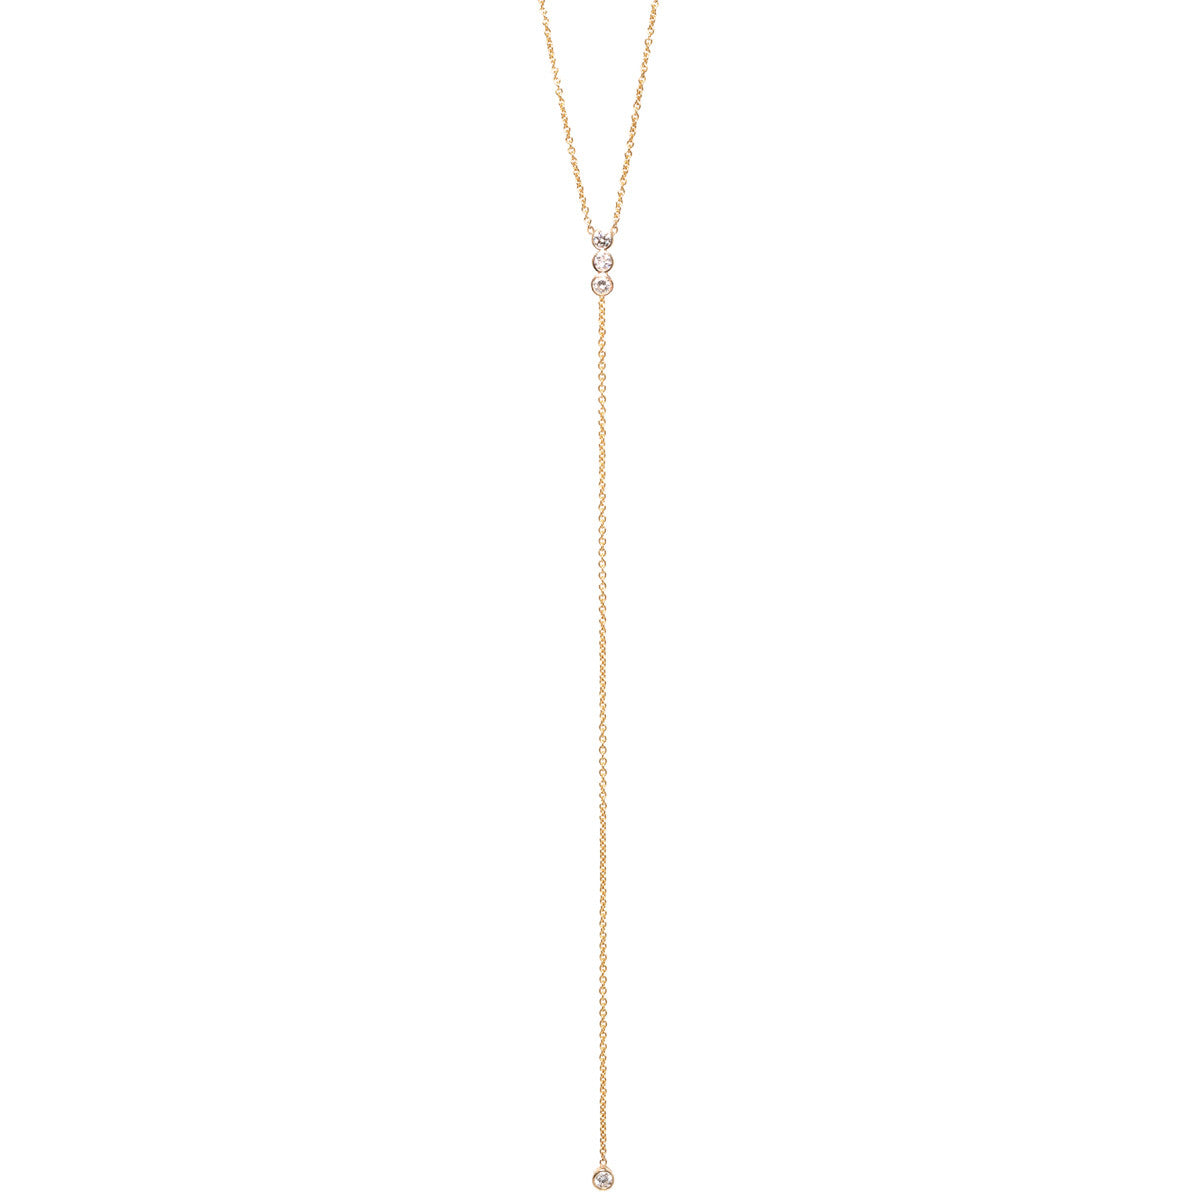 14k bezel set diamond bar lariat necklace